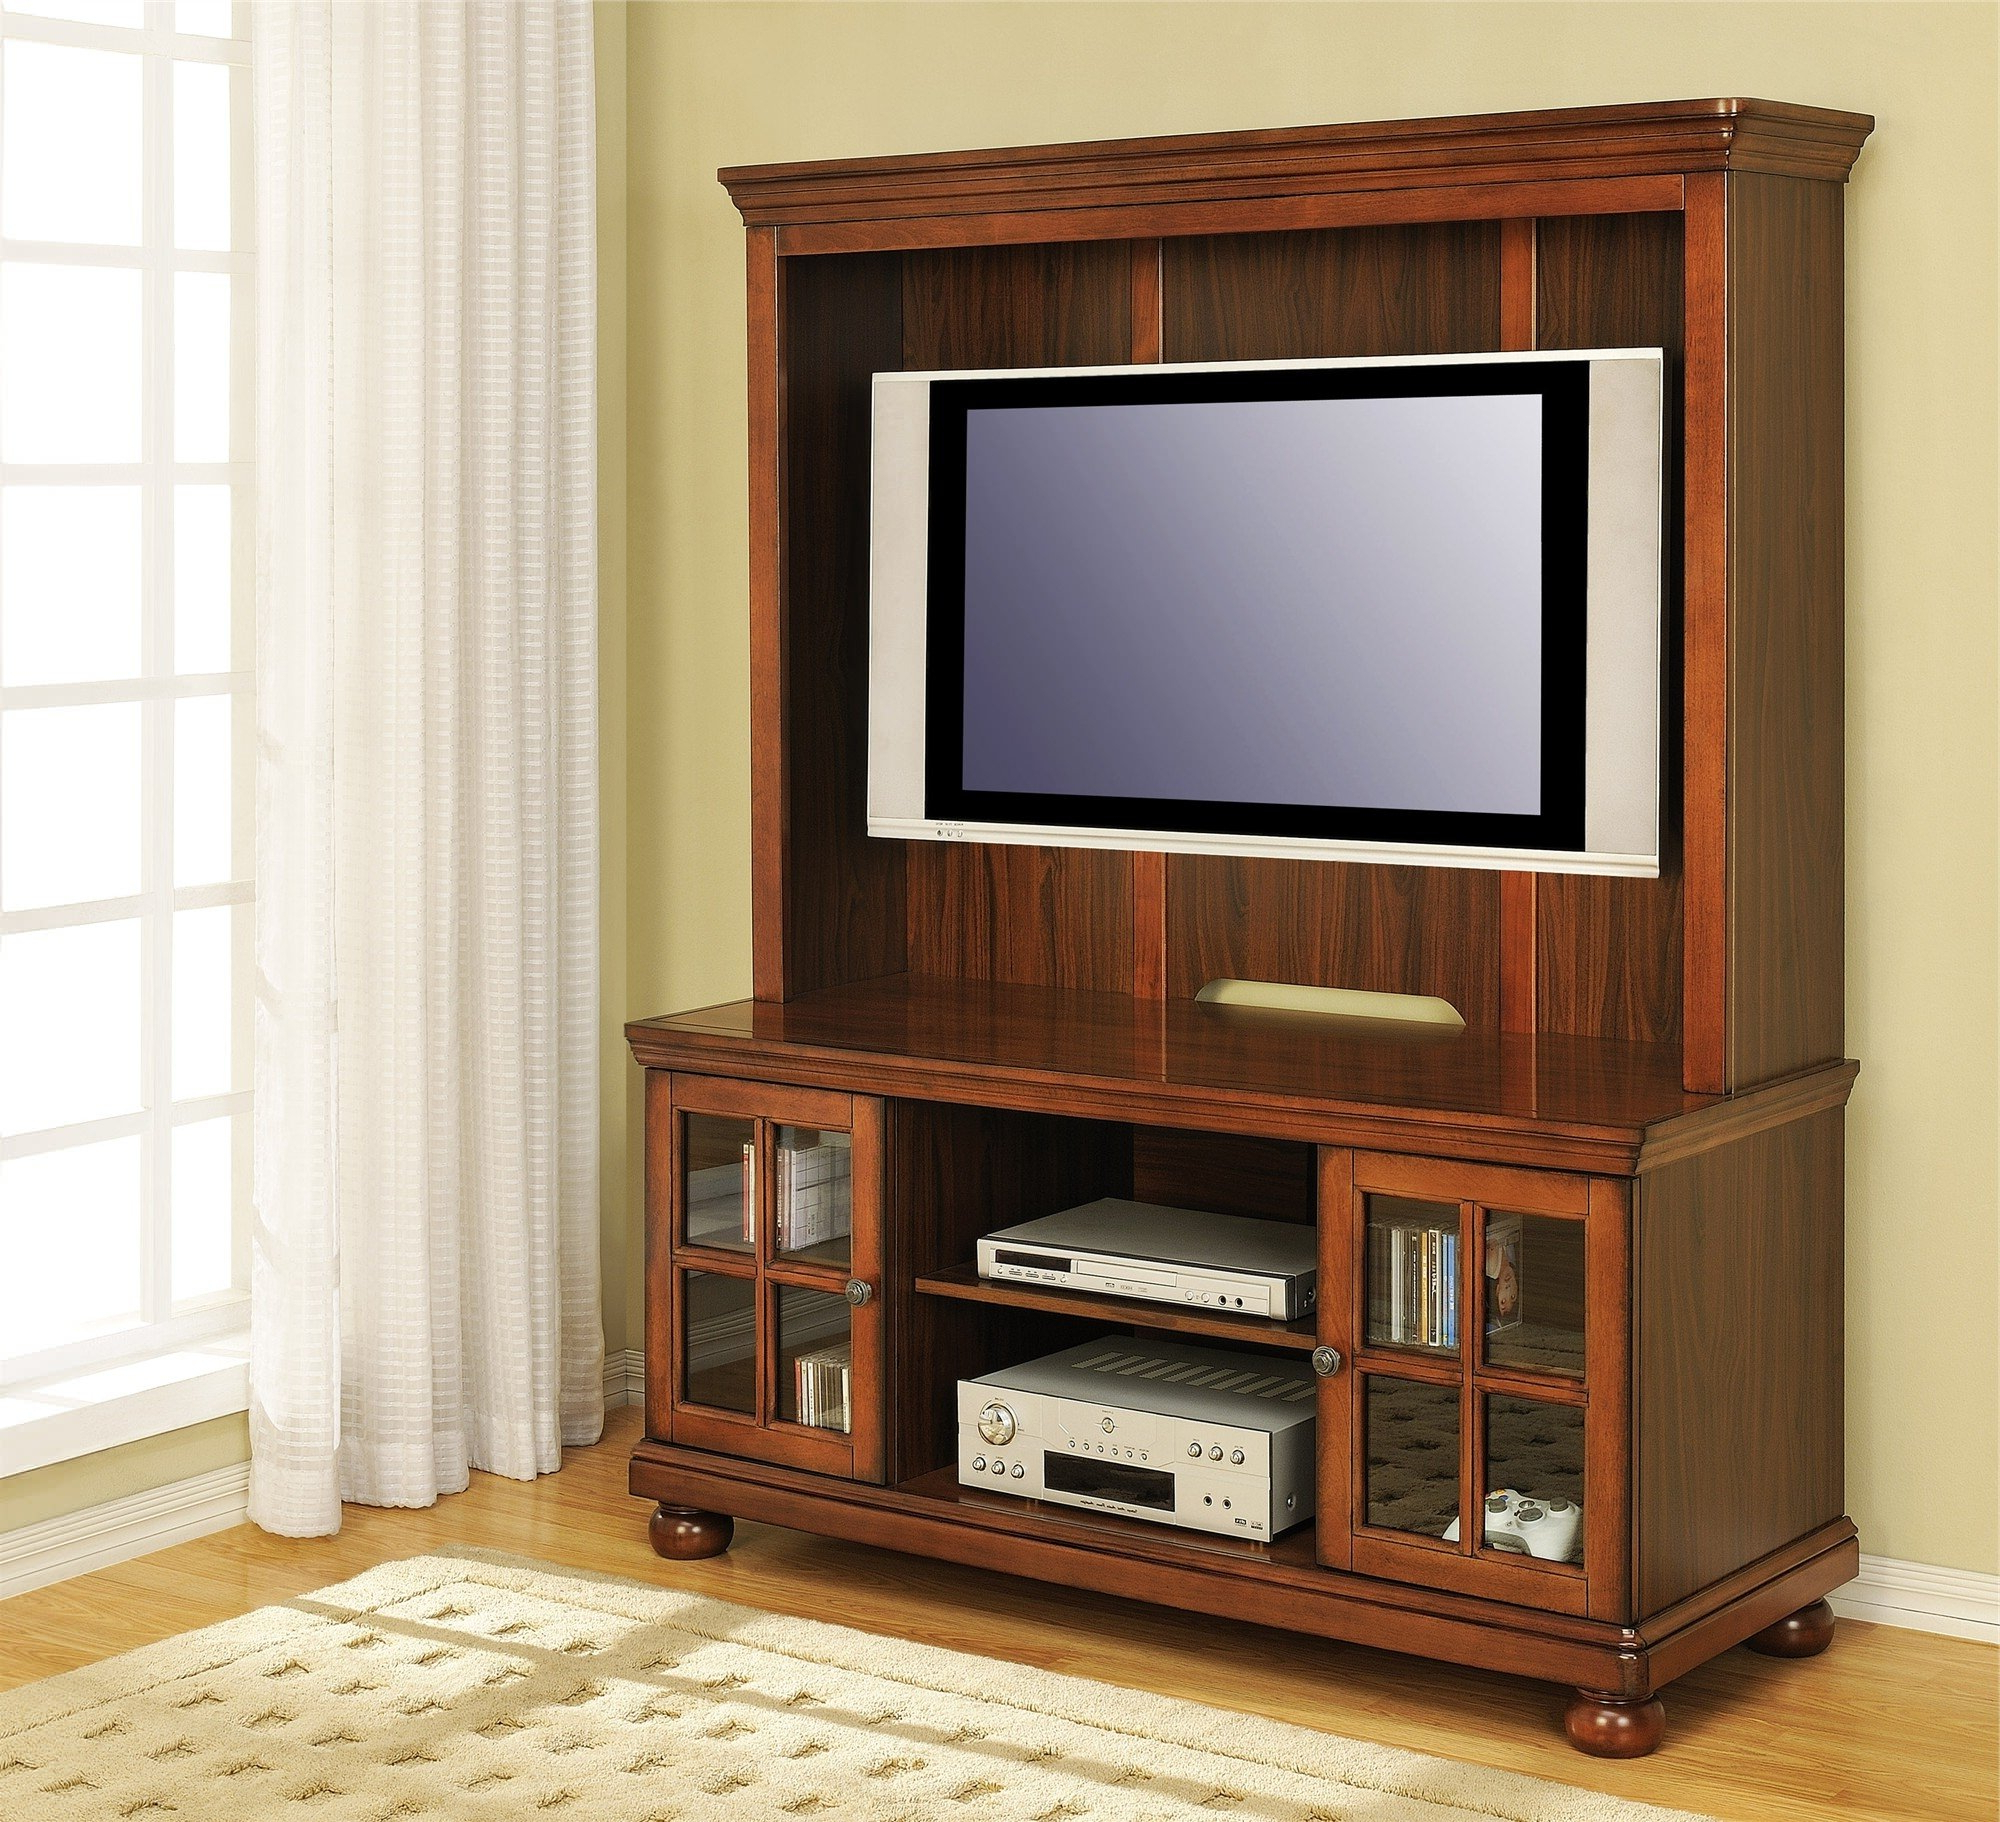 Tv Wall Cabinets Inside Popular Flat Screen Tv Wall Cabinet Furniture — Allin The Details : Tips For (View 14 of 20)